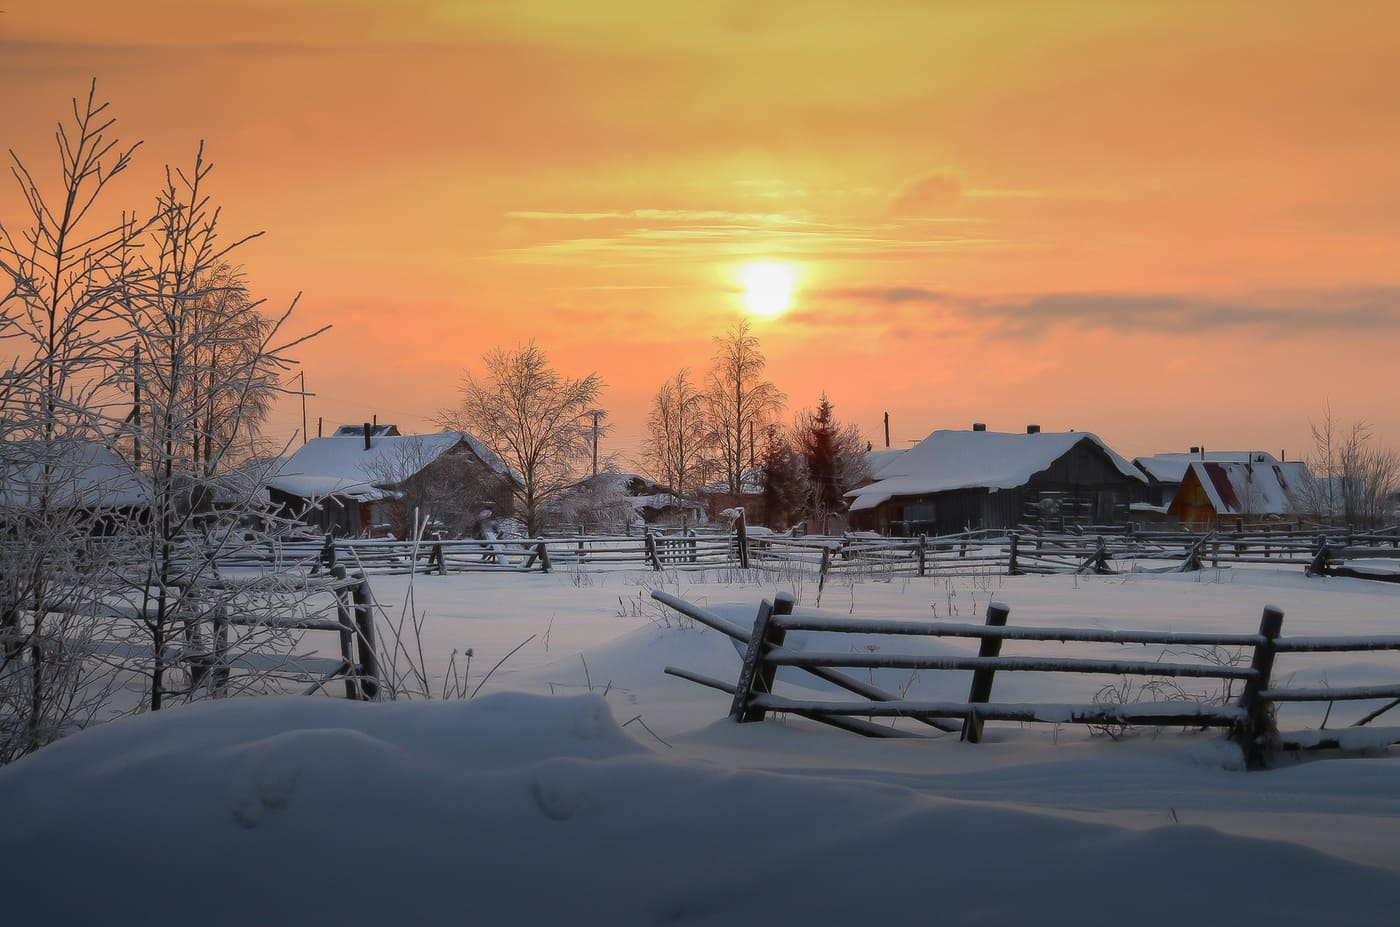 Russian Village: Cold And Silent